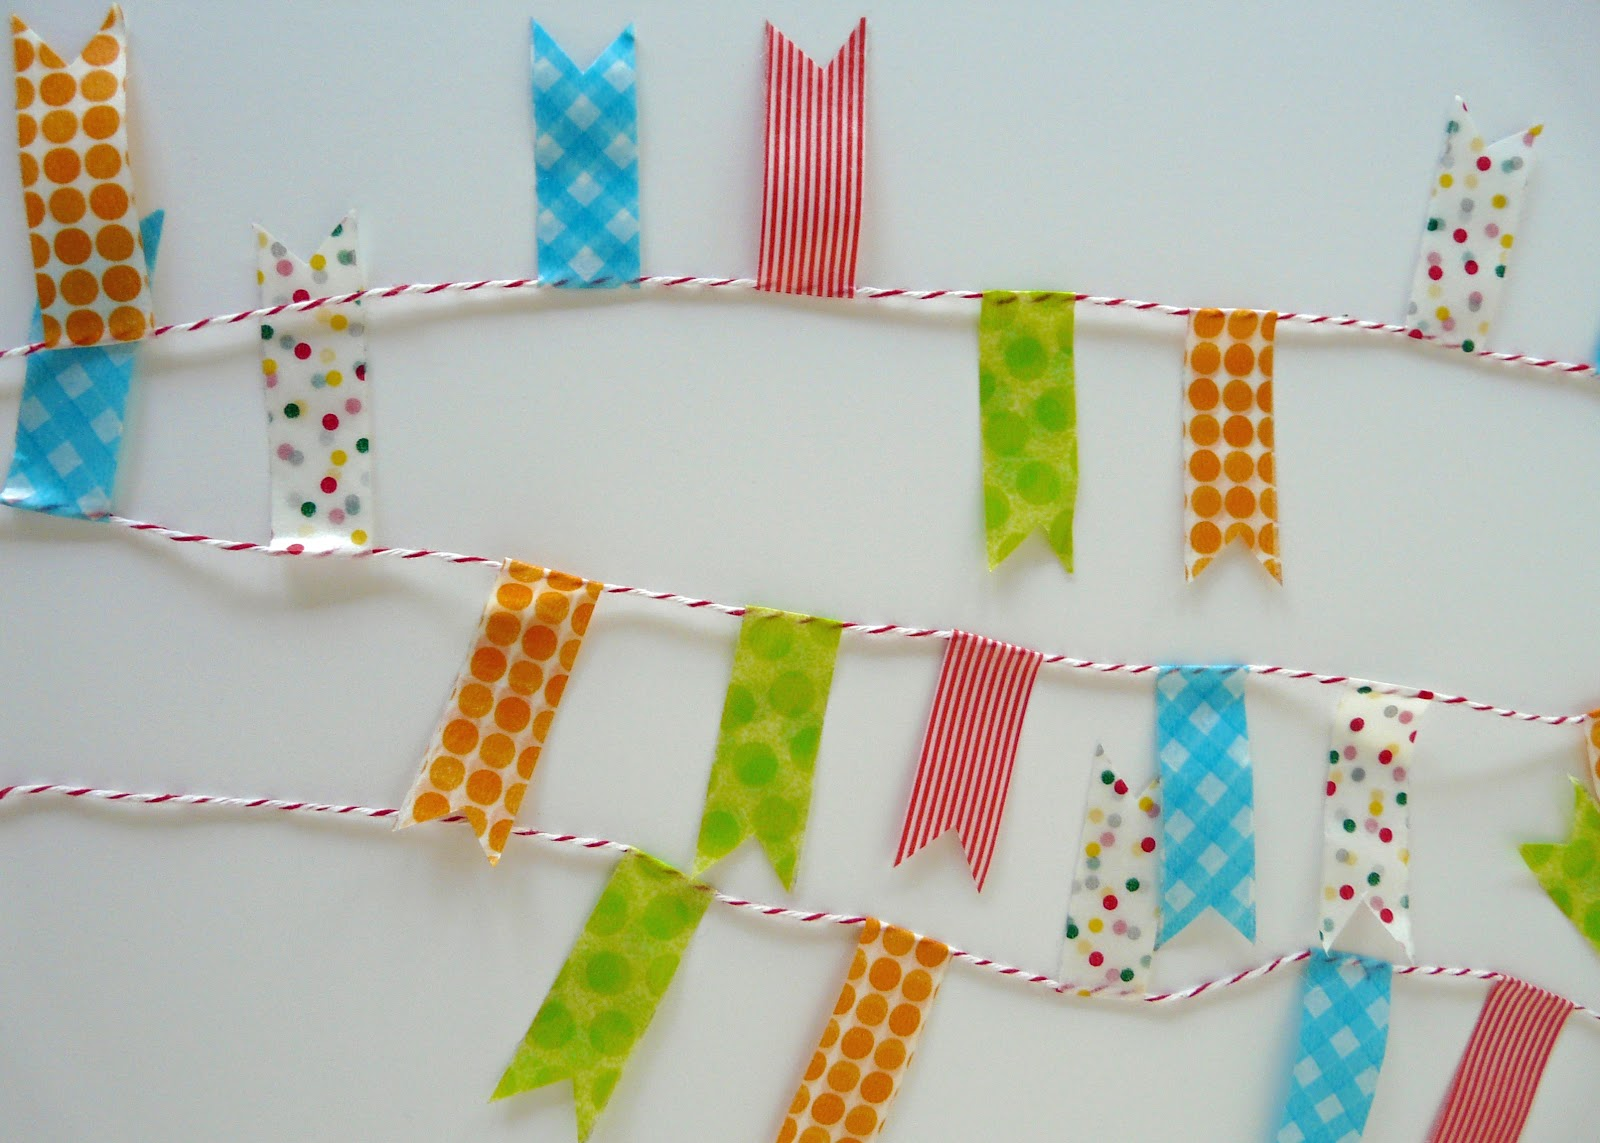 Party Washi Tape Decorations Part 2